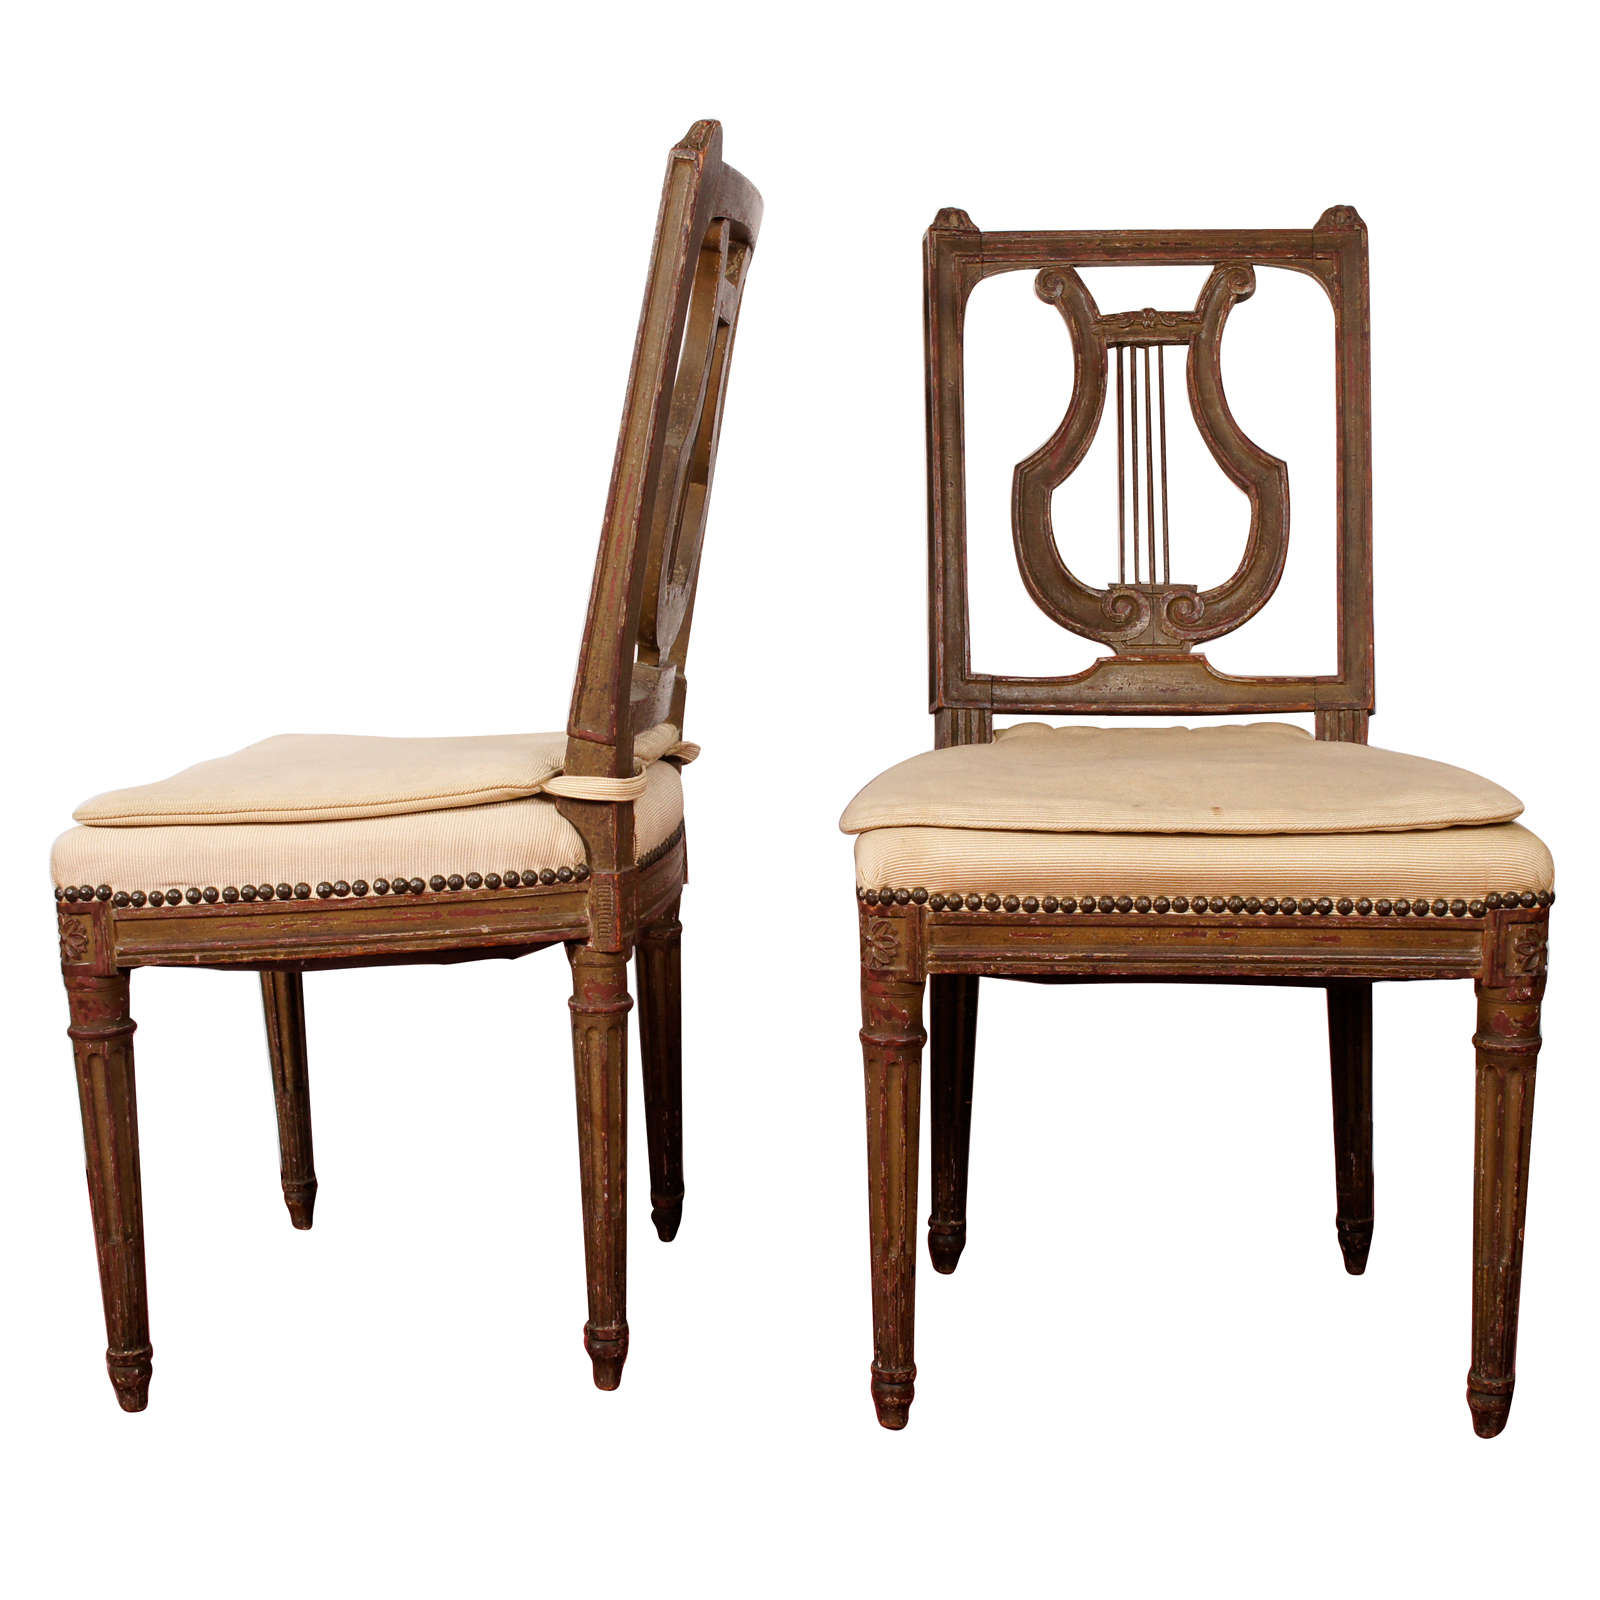 Lyre Back Chairs 19th Century Lyre Back Swedish Side Chairs Pair At 1stdibs